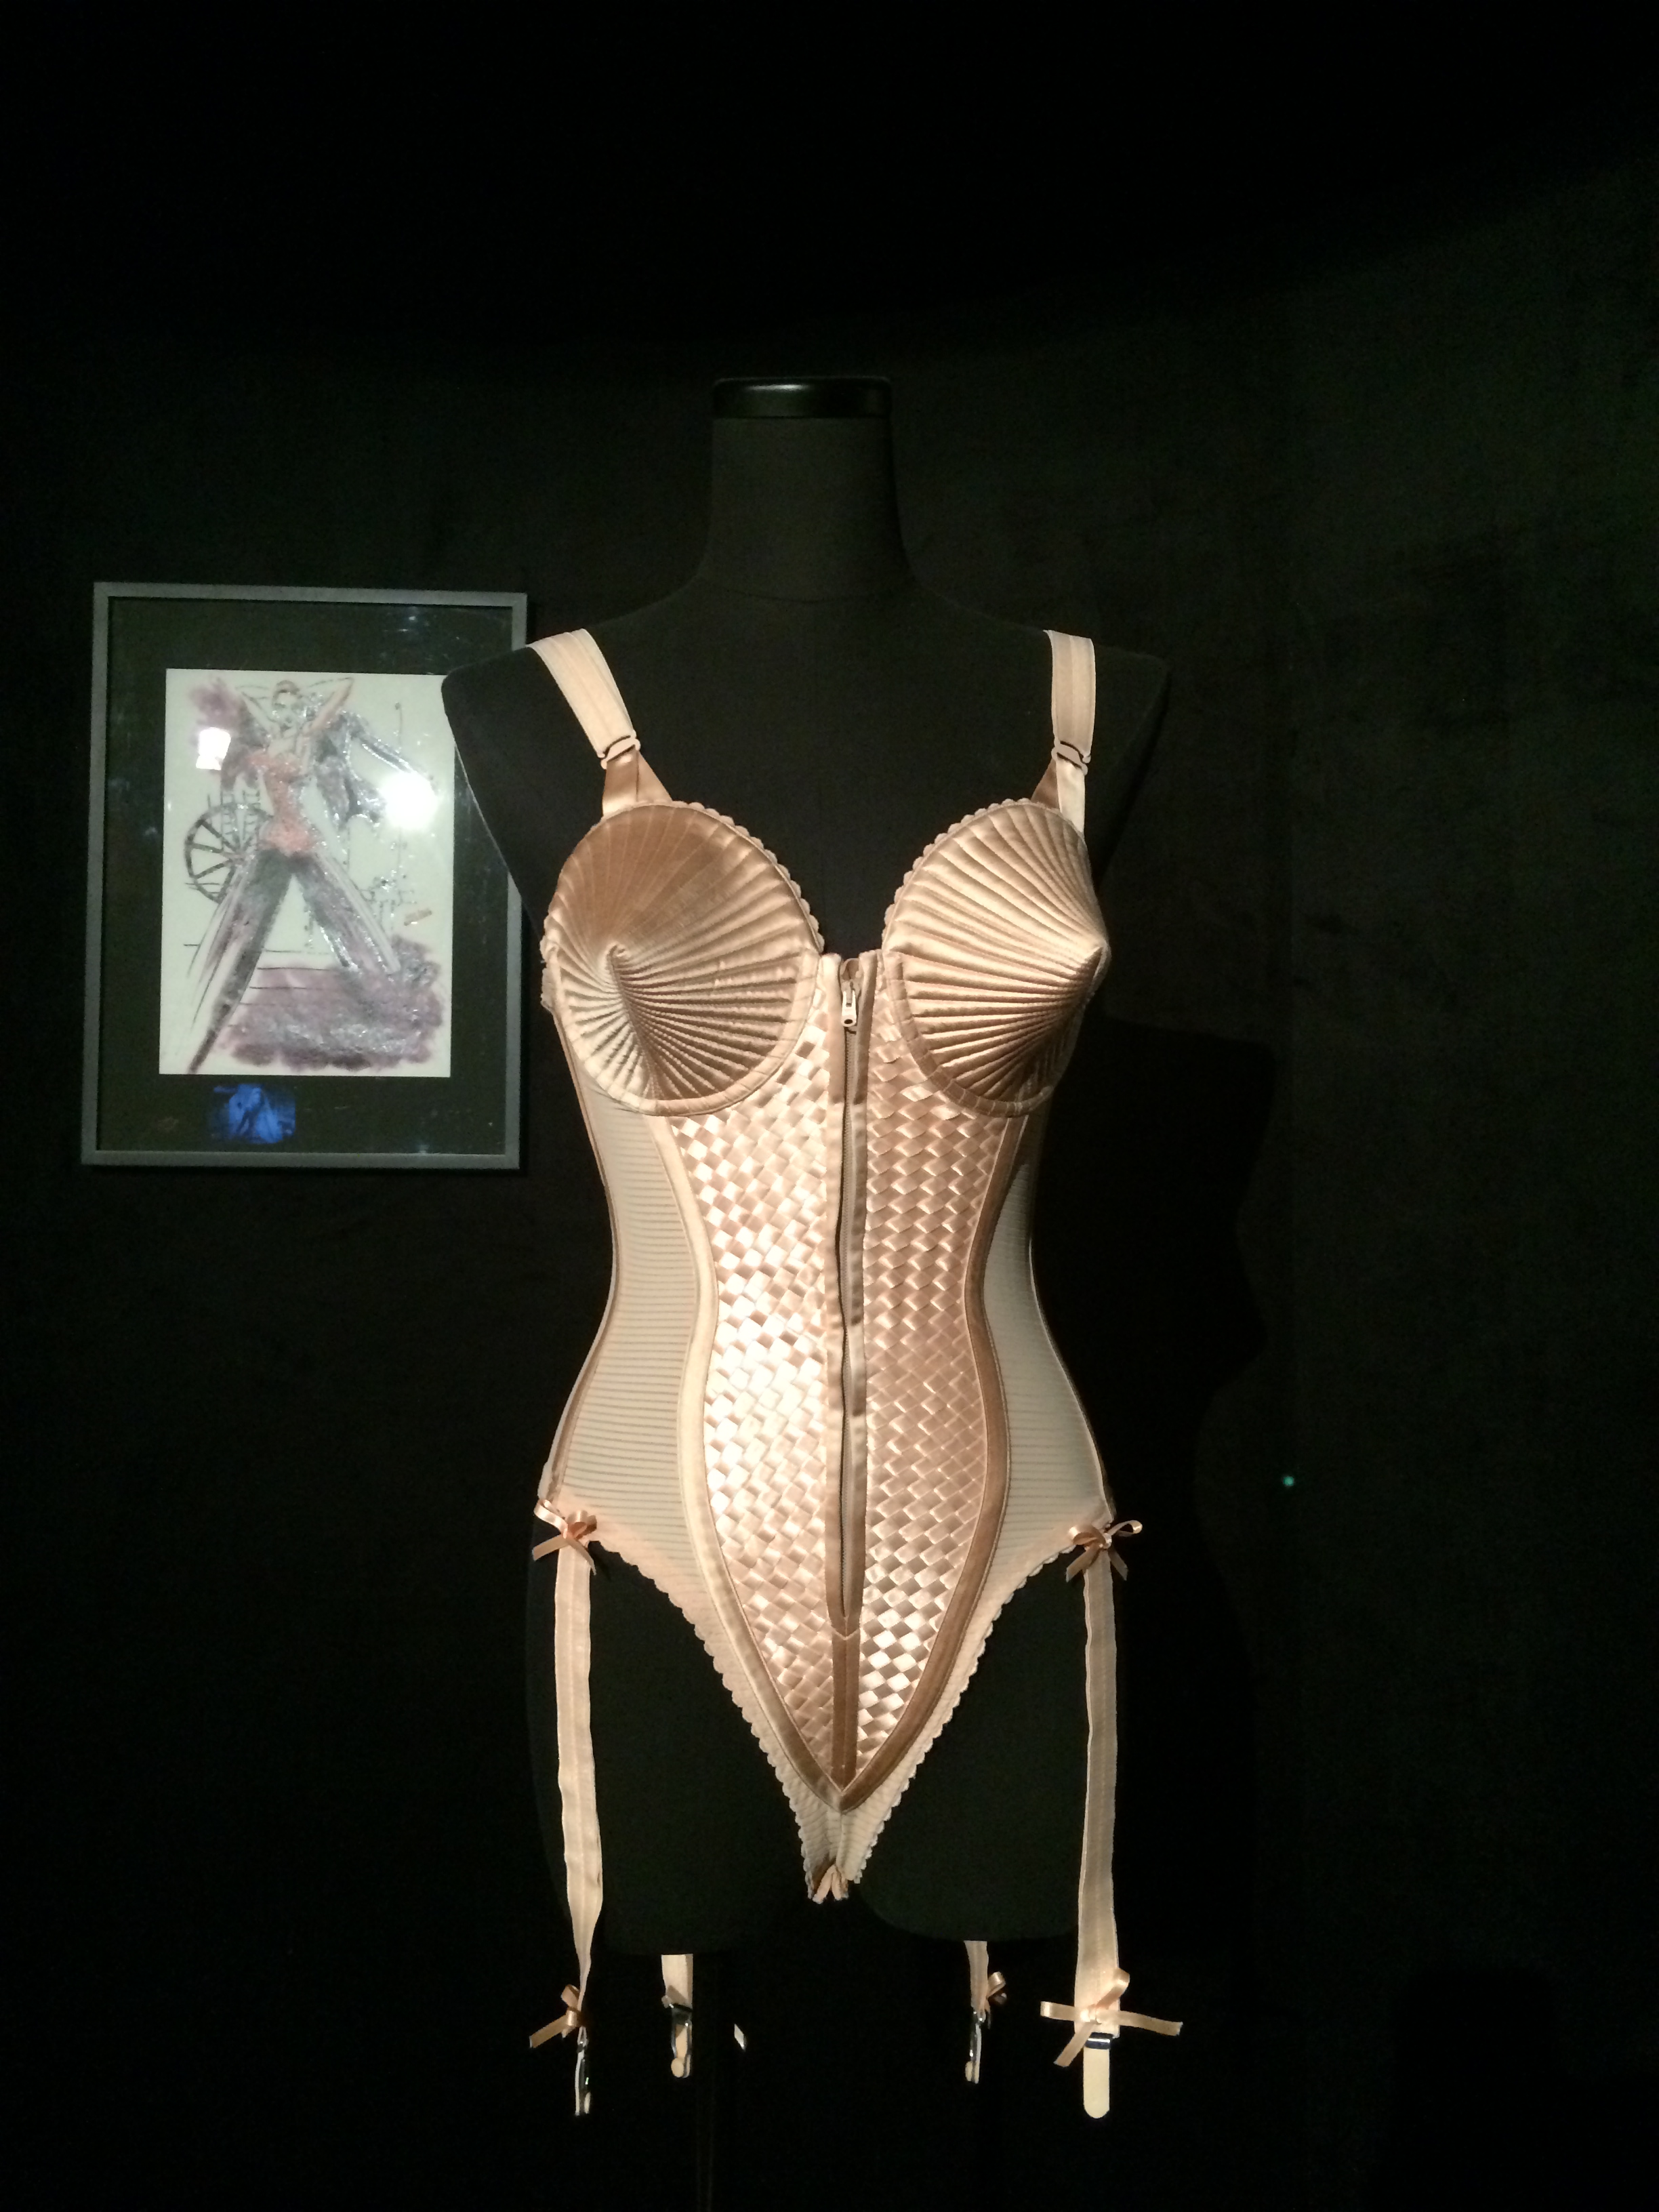 Jean Paul Gaultier in Fashionable Exhibition